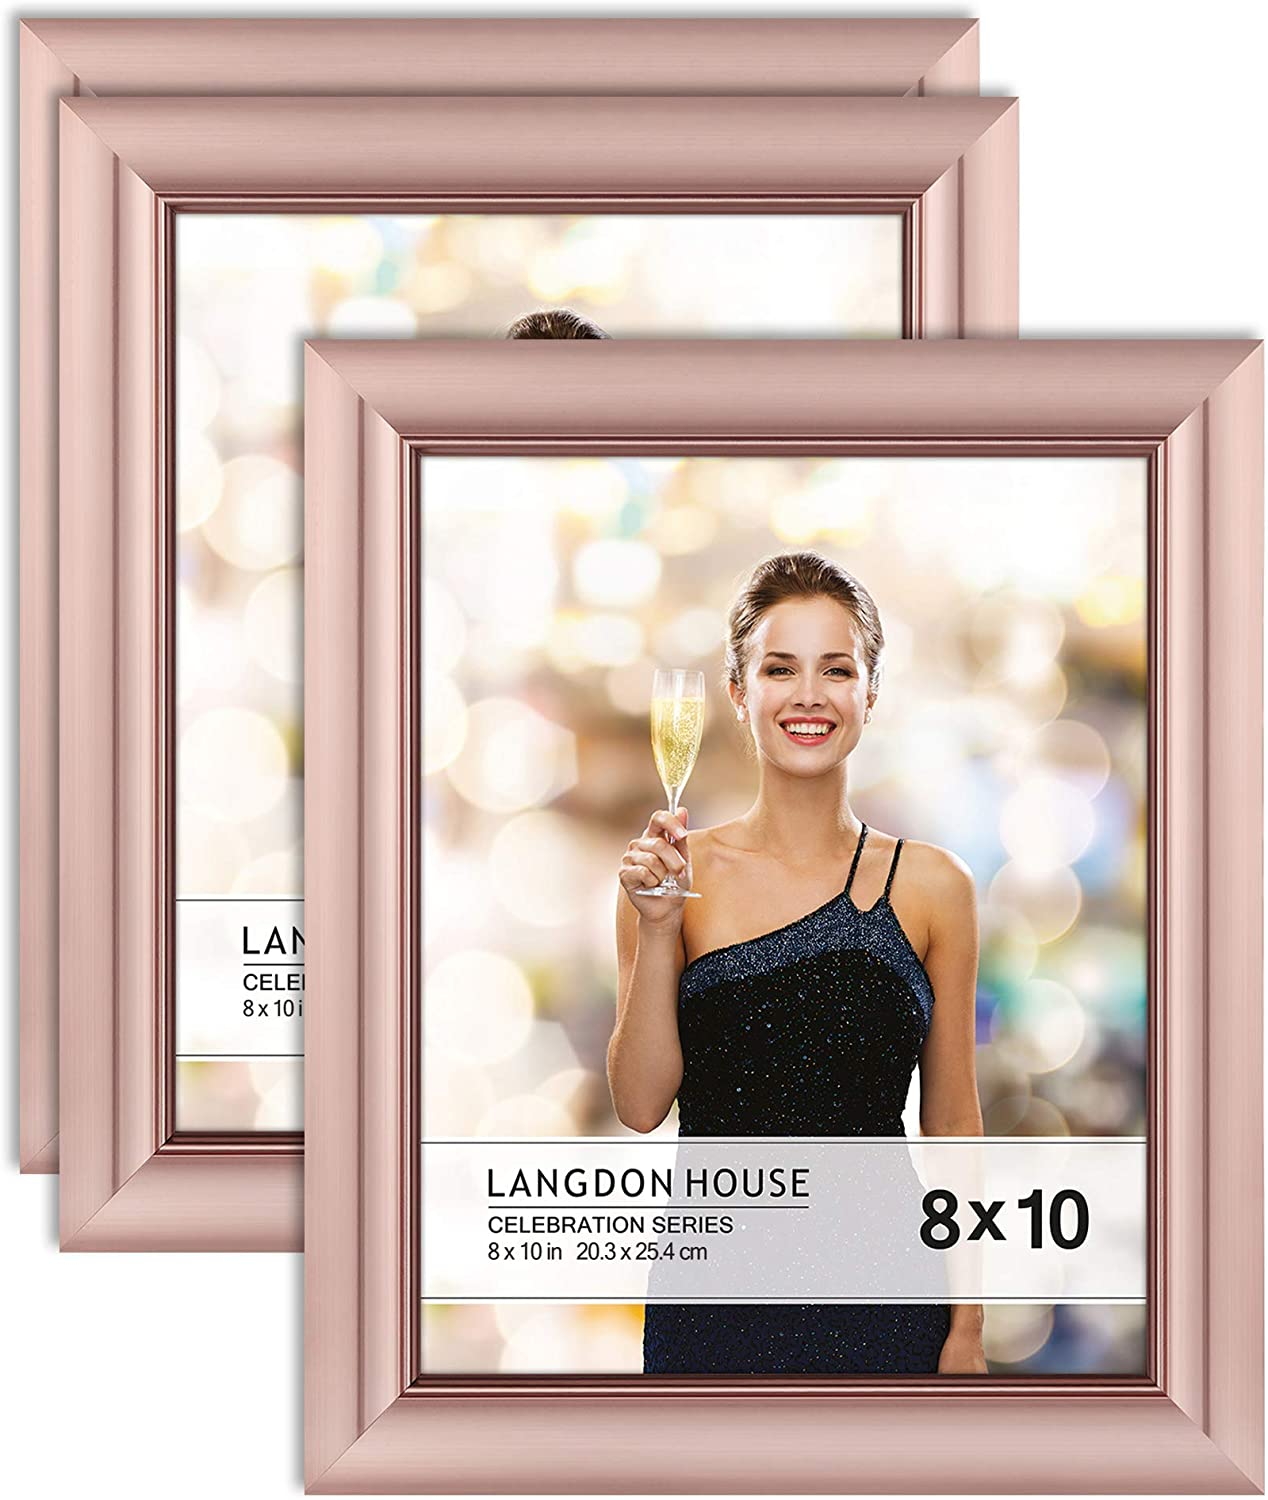 Langdon House 8x10 Picture Frames (Rose Gold, 3 Pack), Contemporary Glam Photo Frames 8 x 10, Wall Mount or Table Top, Celebration Collection